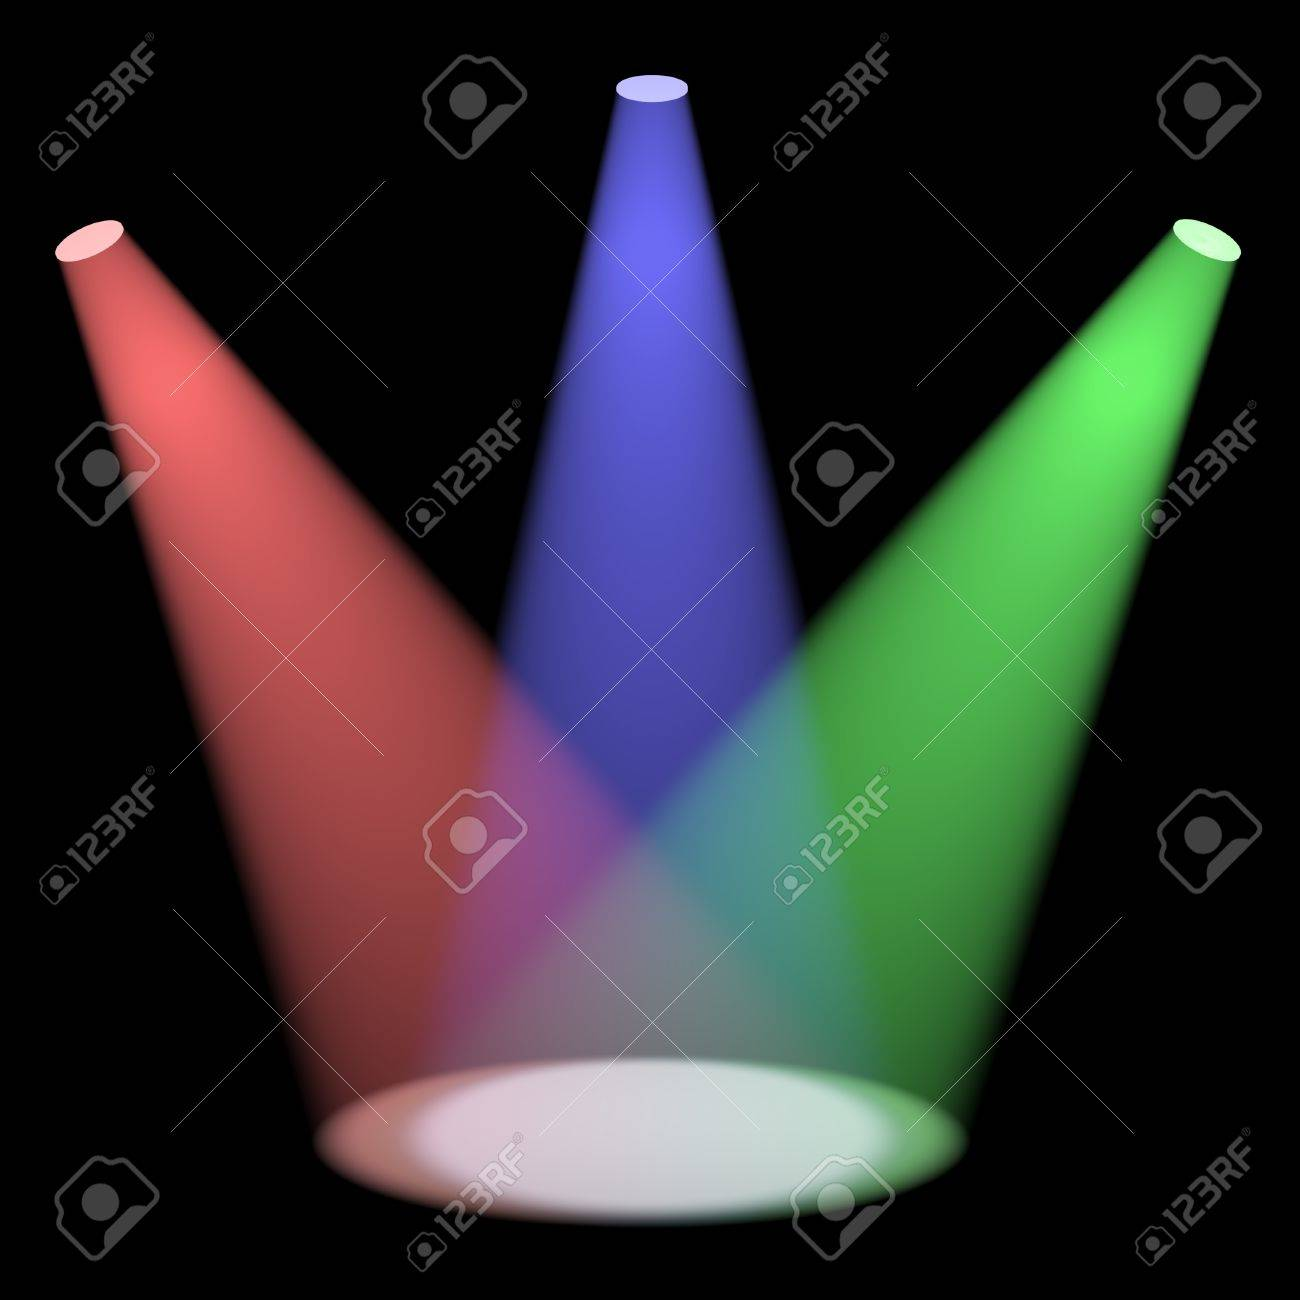 Multicolored Spotlights Shining On A Small Stage With Black Background Stock Photo - 13480355